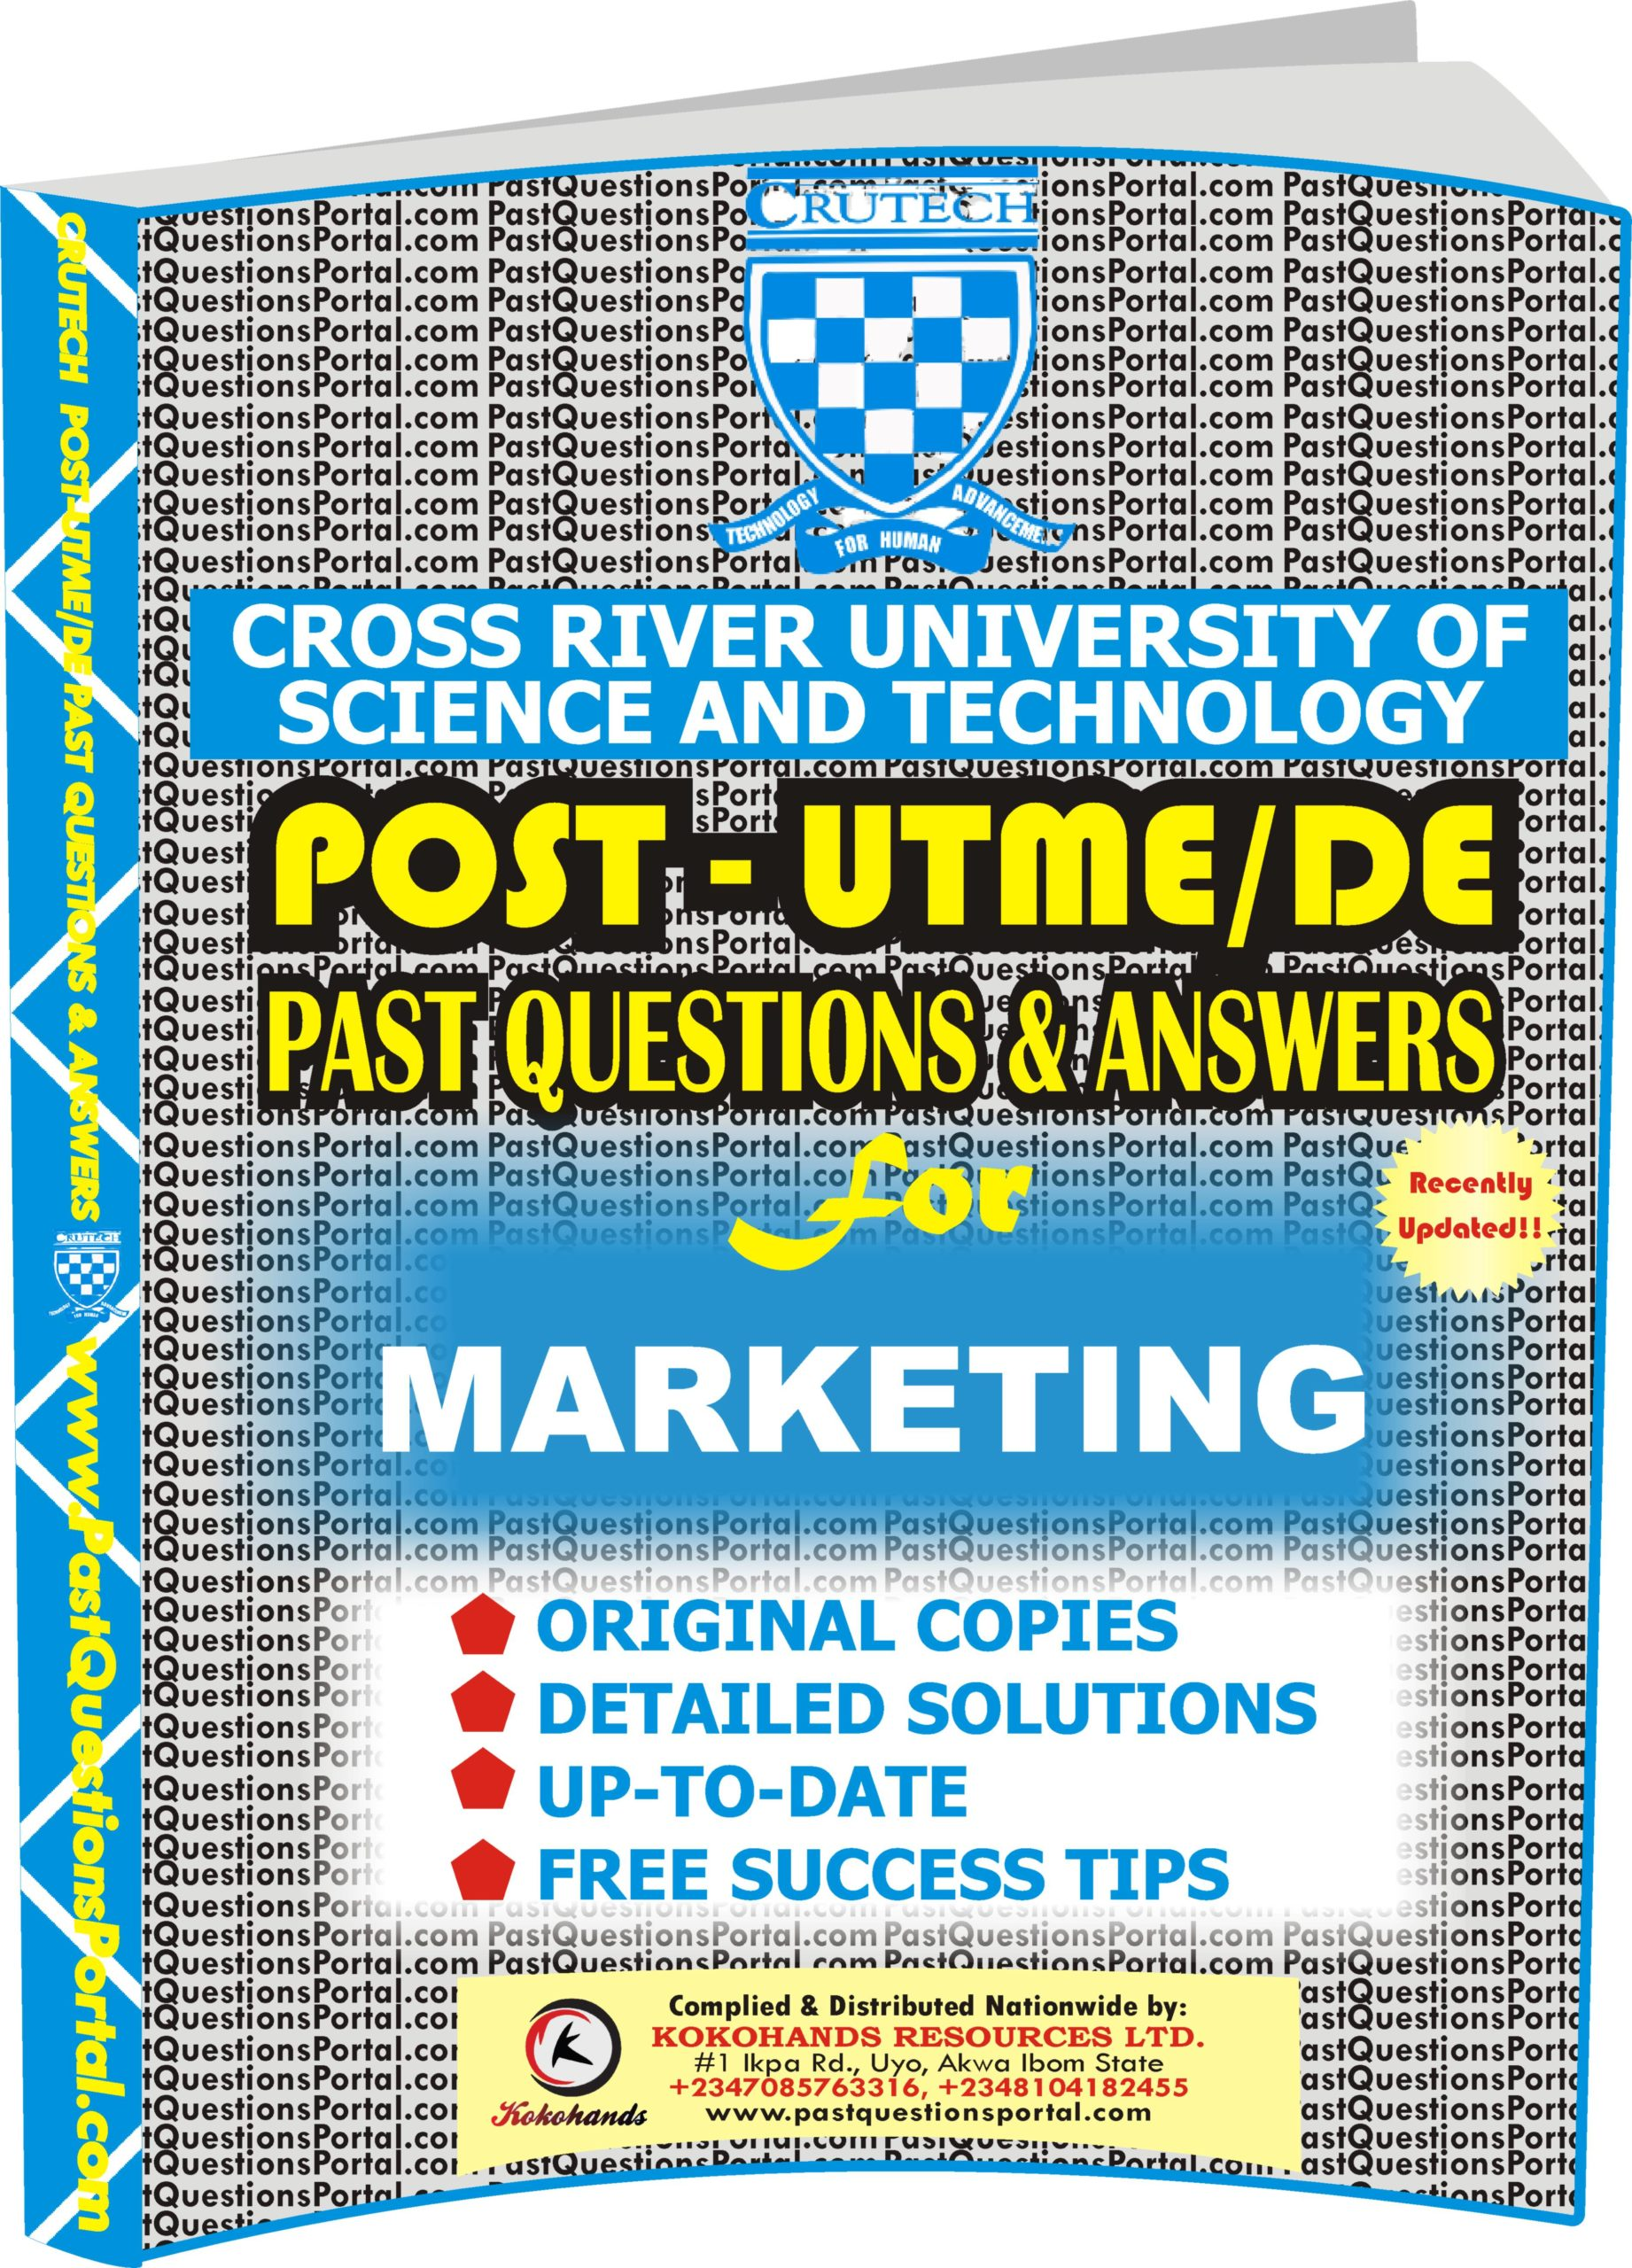 CRUTECH Post UTME Past Questions for MARKETING